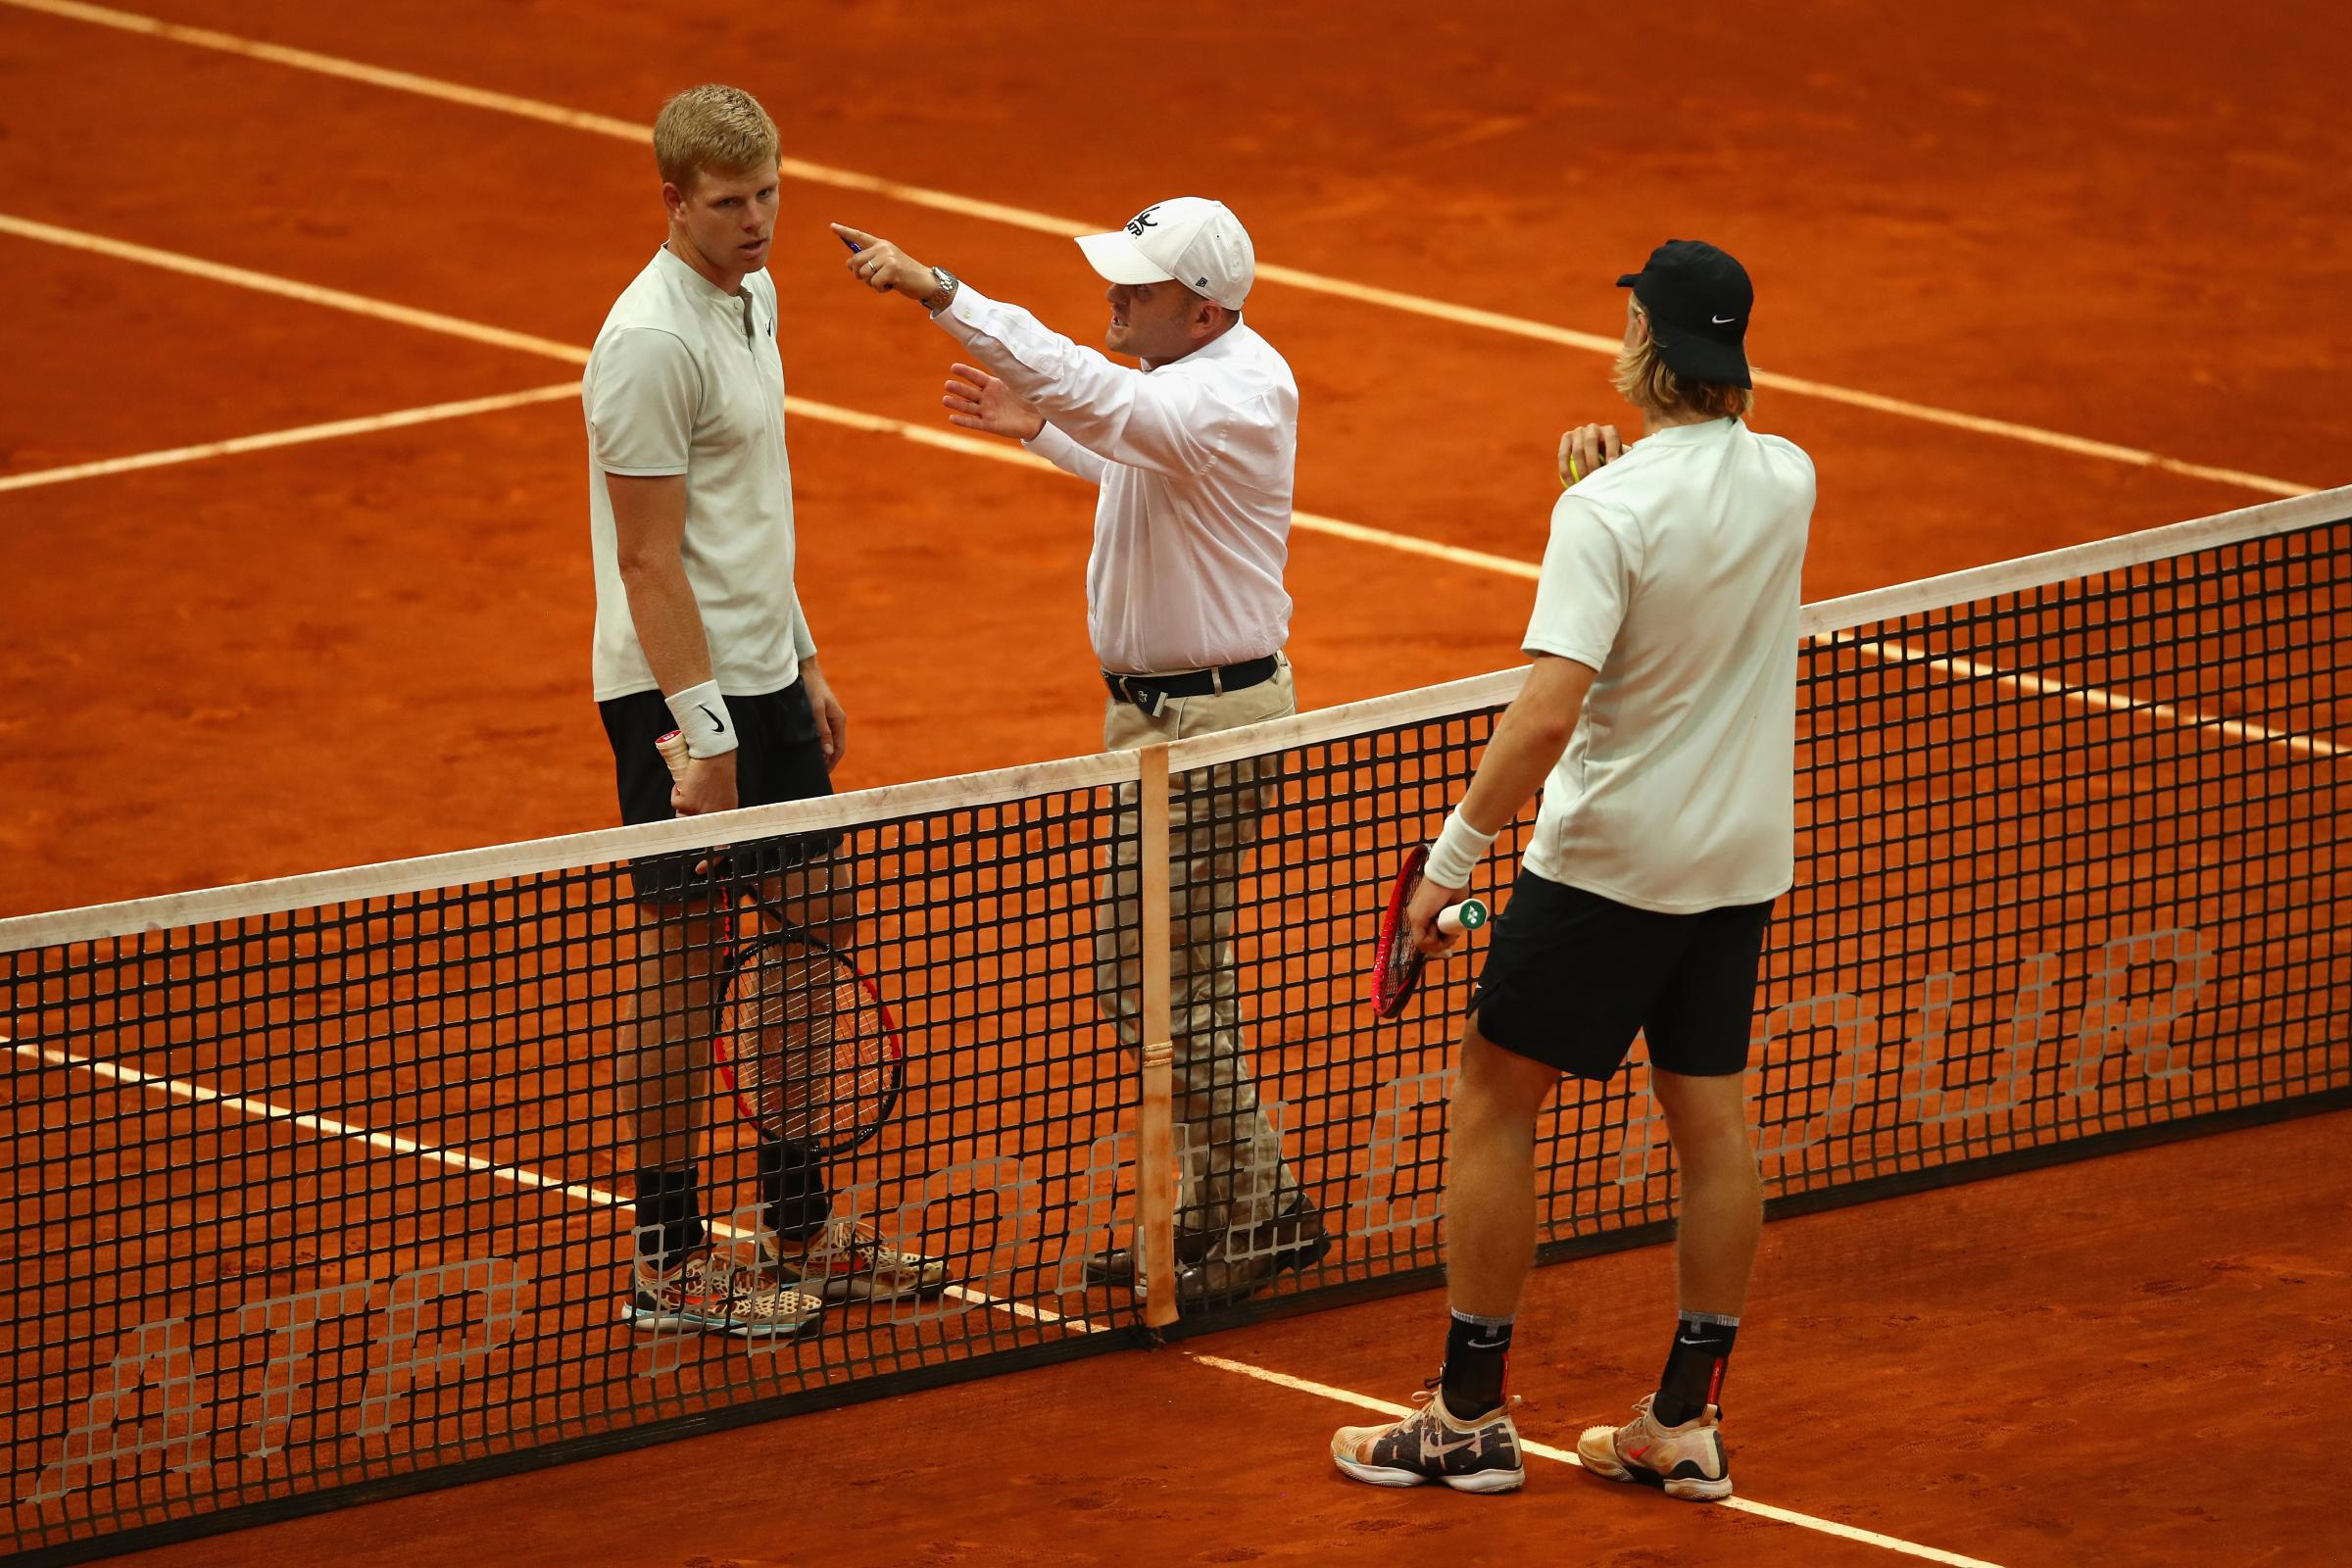 Edmund takes down 'legend' Djokovic as Nadal cruises again — Madrid Open